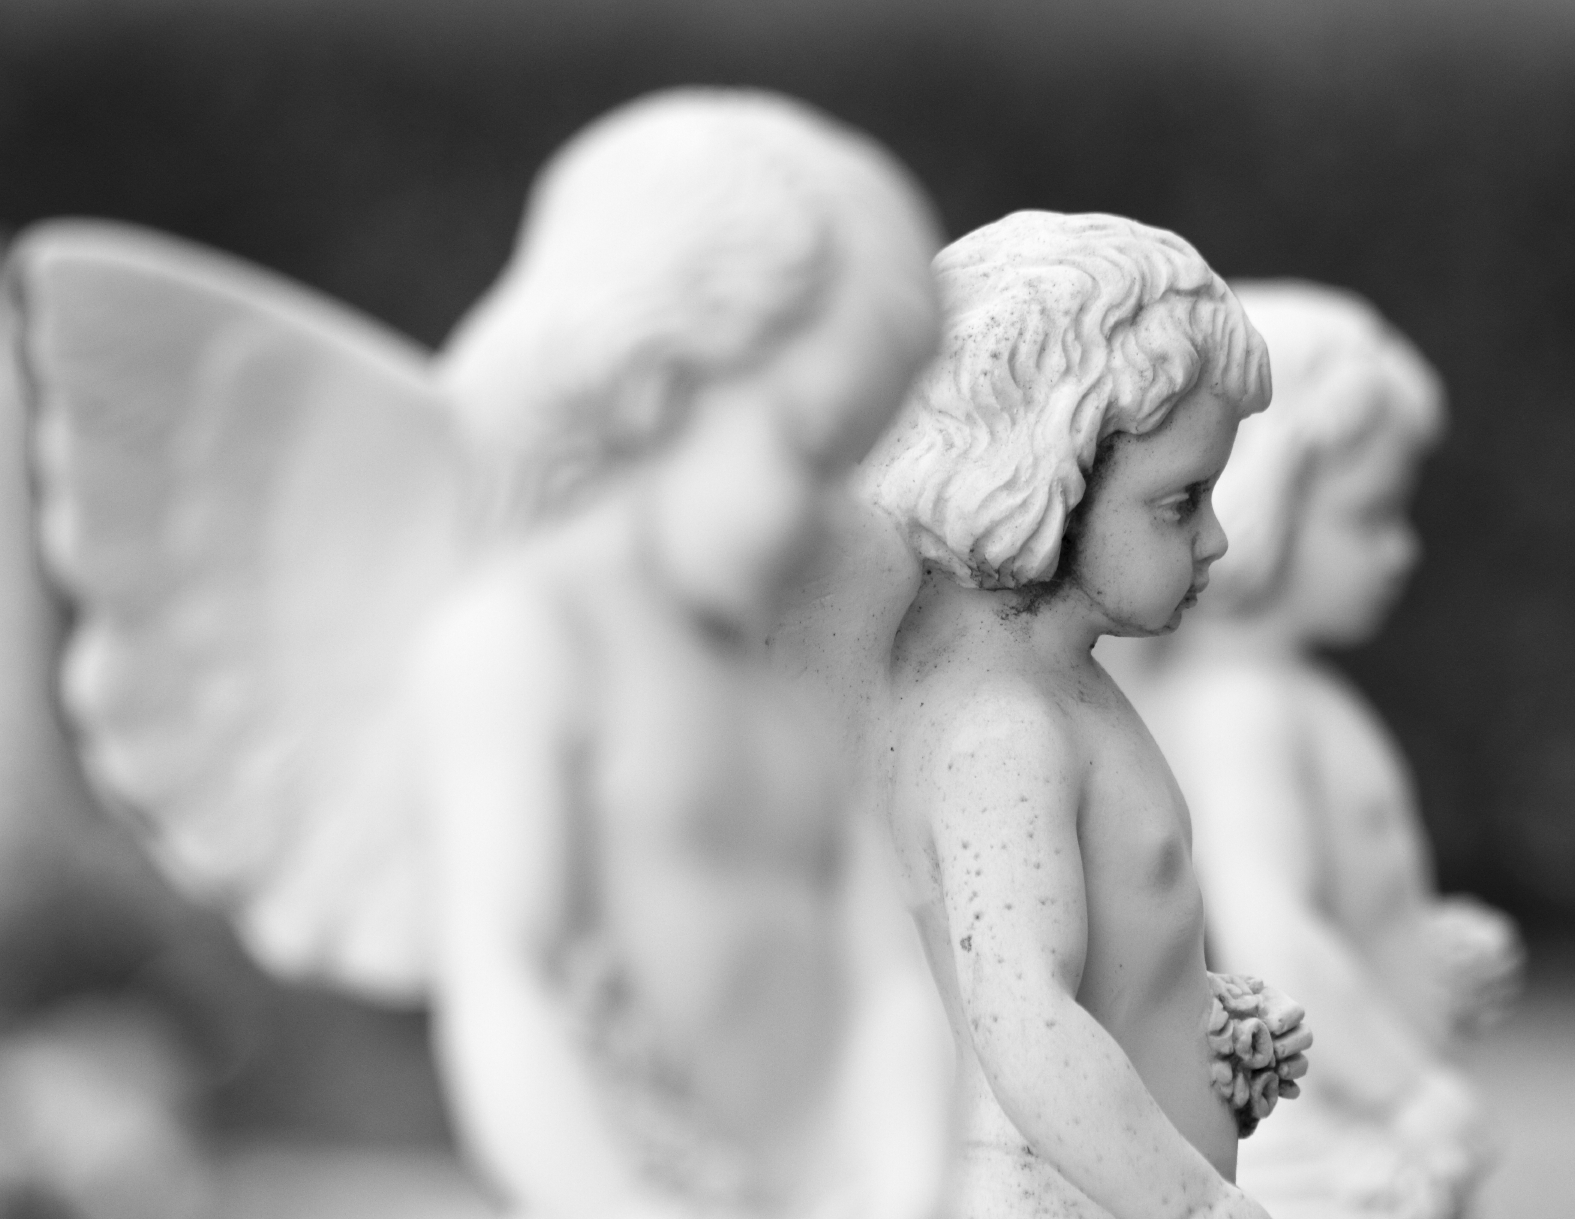 Angels gently usher light into the hearts of all. Their mission: to help you shine in big and bright ways.